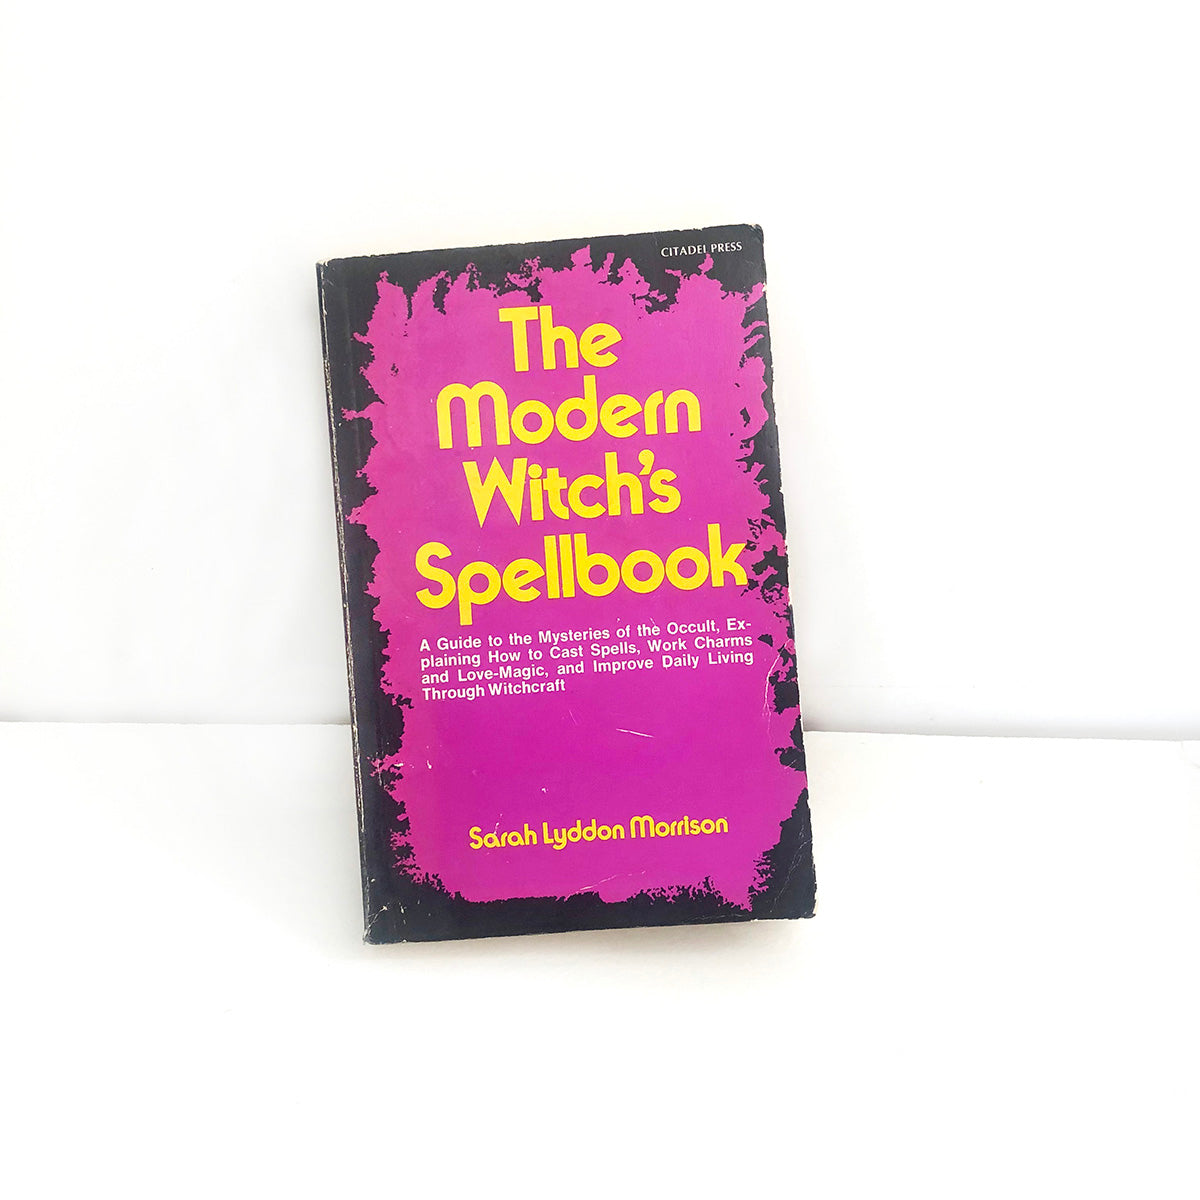 The Modern Witches Spellbook